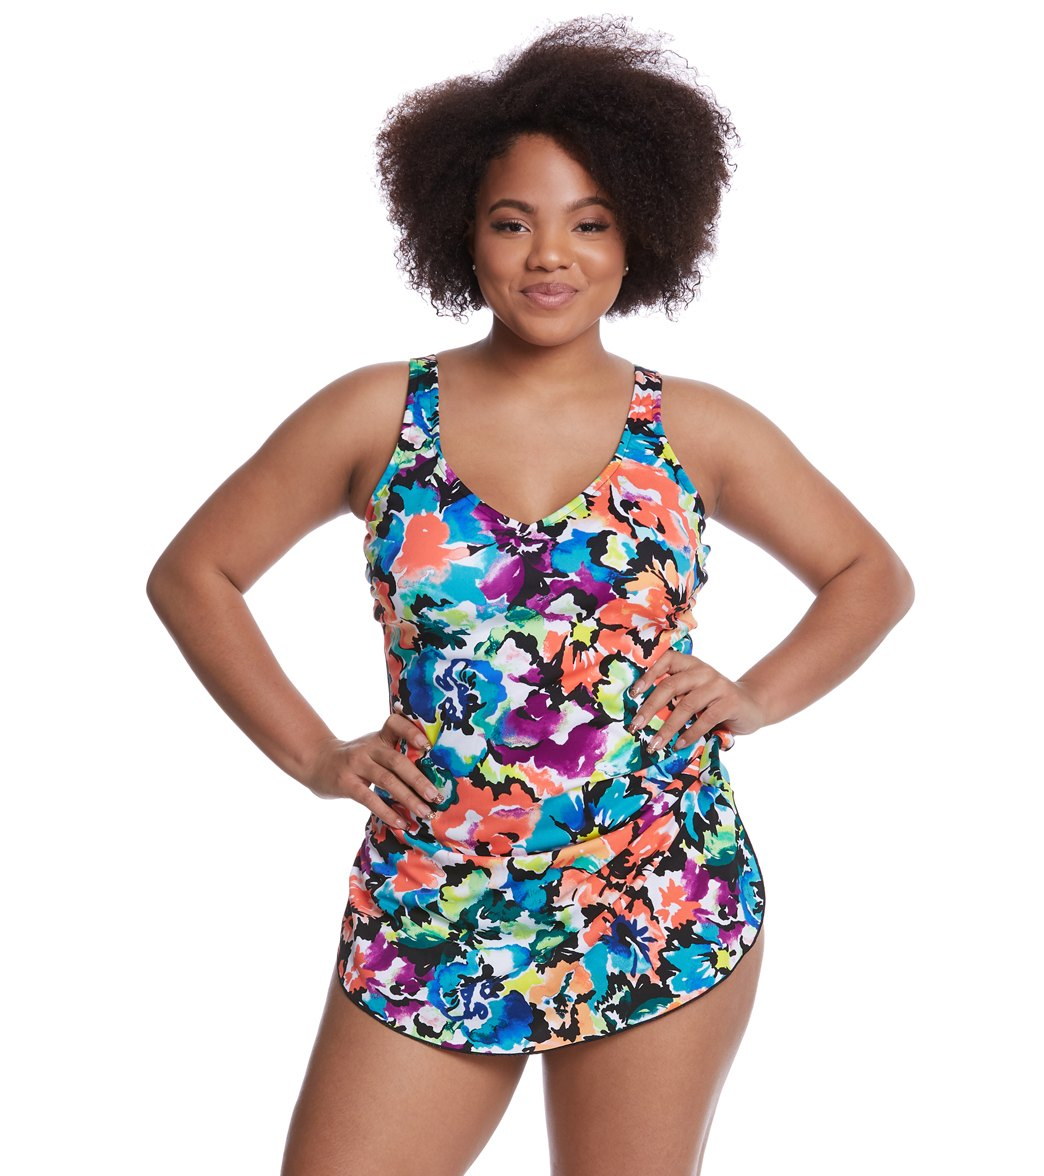 aa72e02b20 Maxine Plus Size Blossom Spa Chlorine Resistant Sarong One Piece Swimsuit  at SwimOutlet.com - Free Shipping